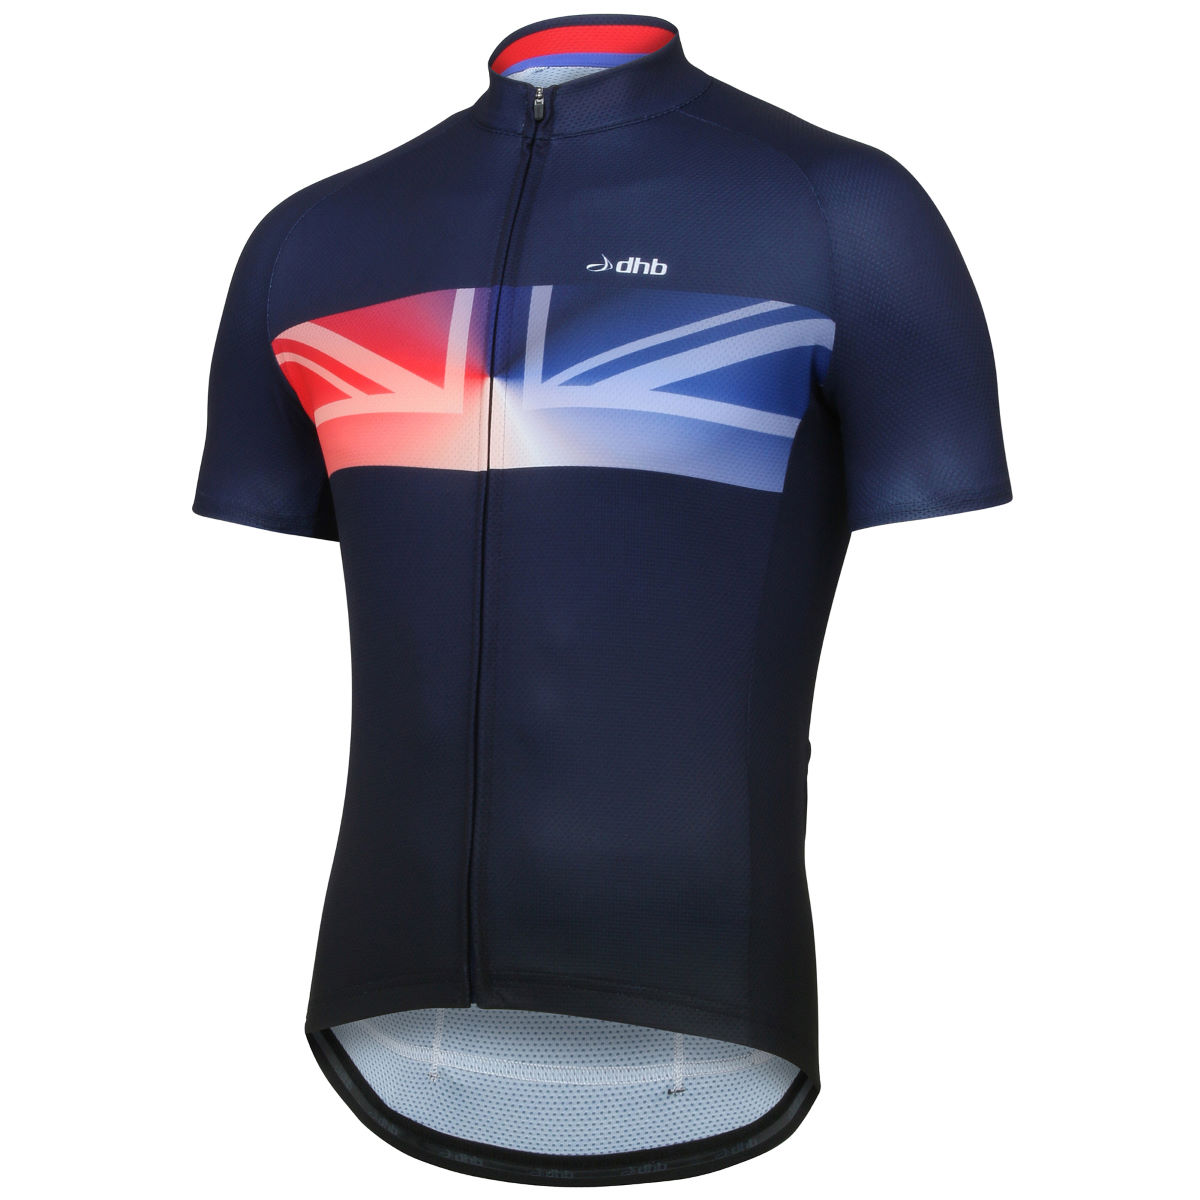 dhb GB Edition Short Sleeve Jersey